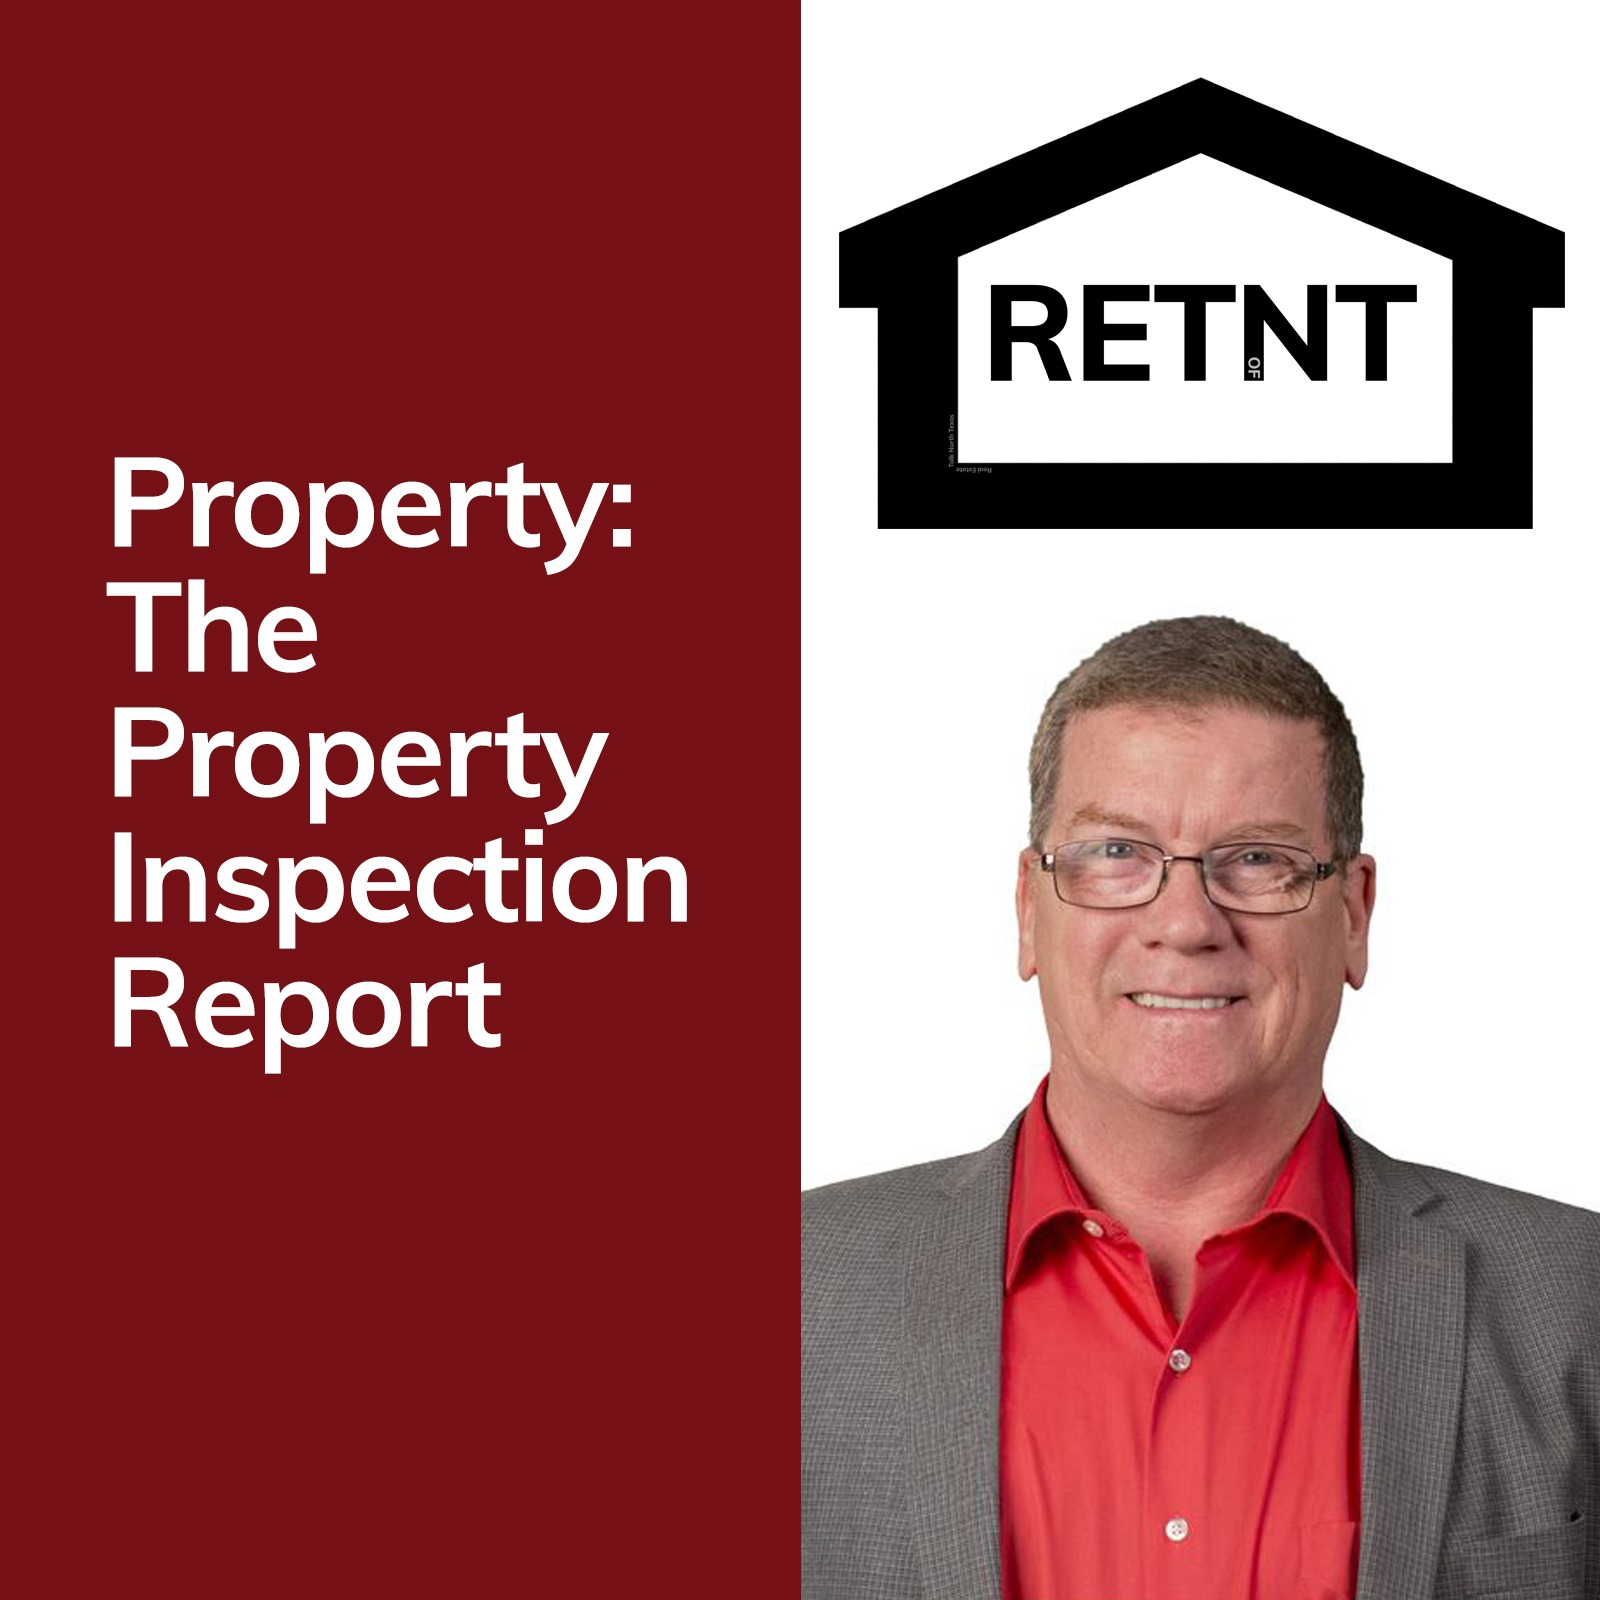 The Property Inspection Report